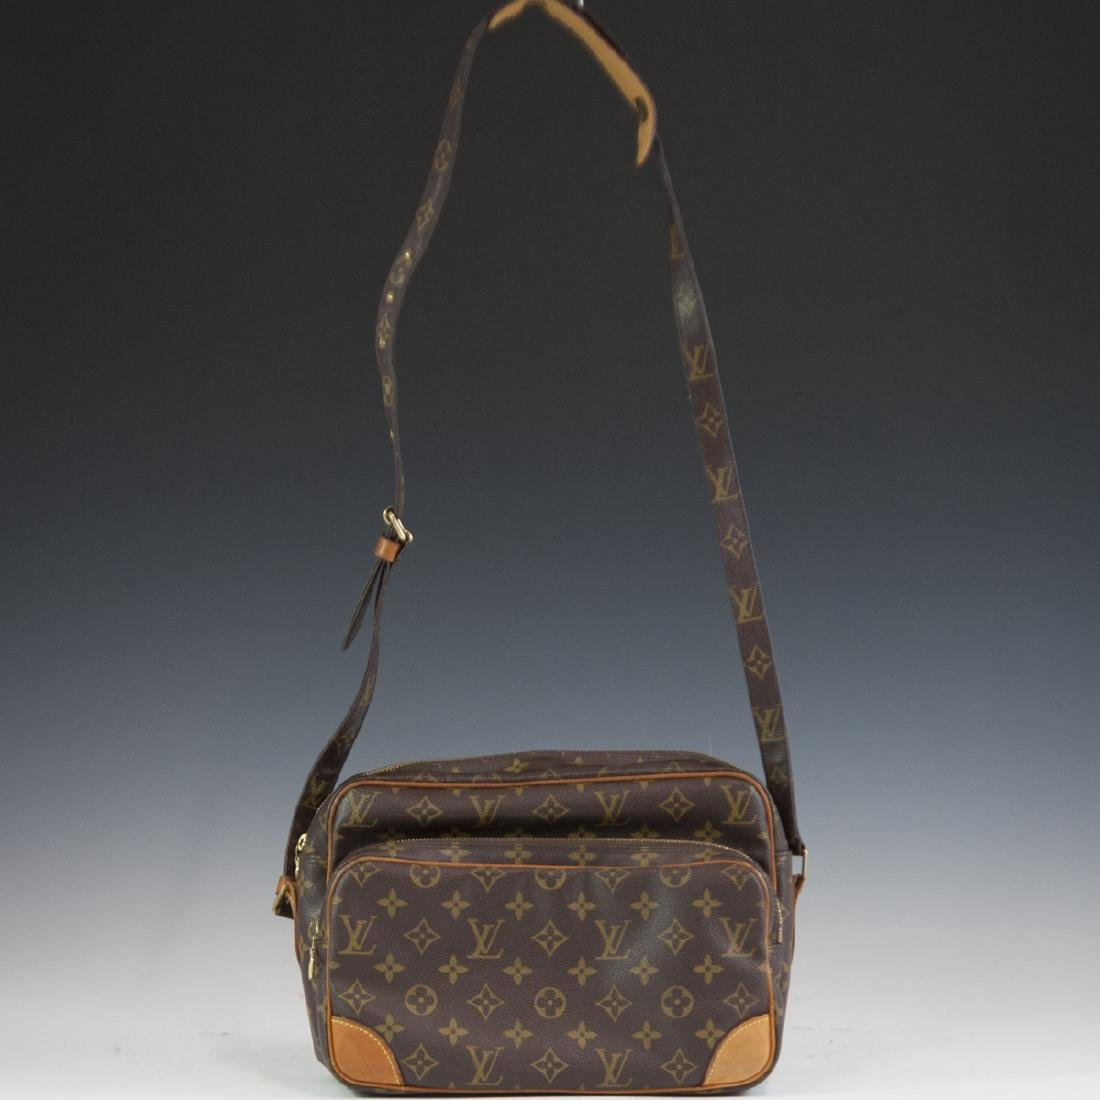 Louis Vuitton Canvas Nile Shoulder Bag